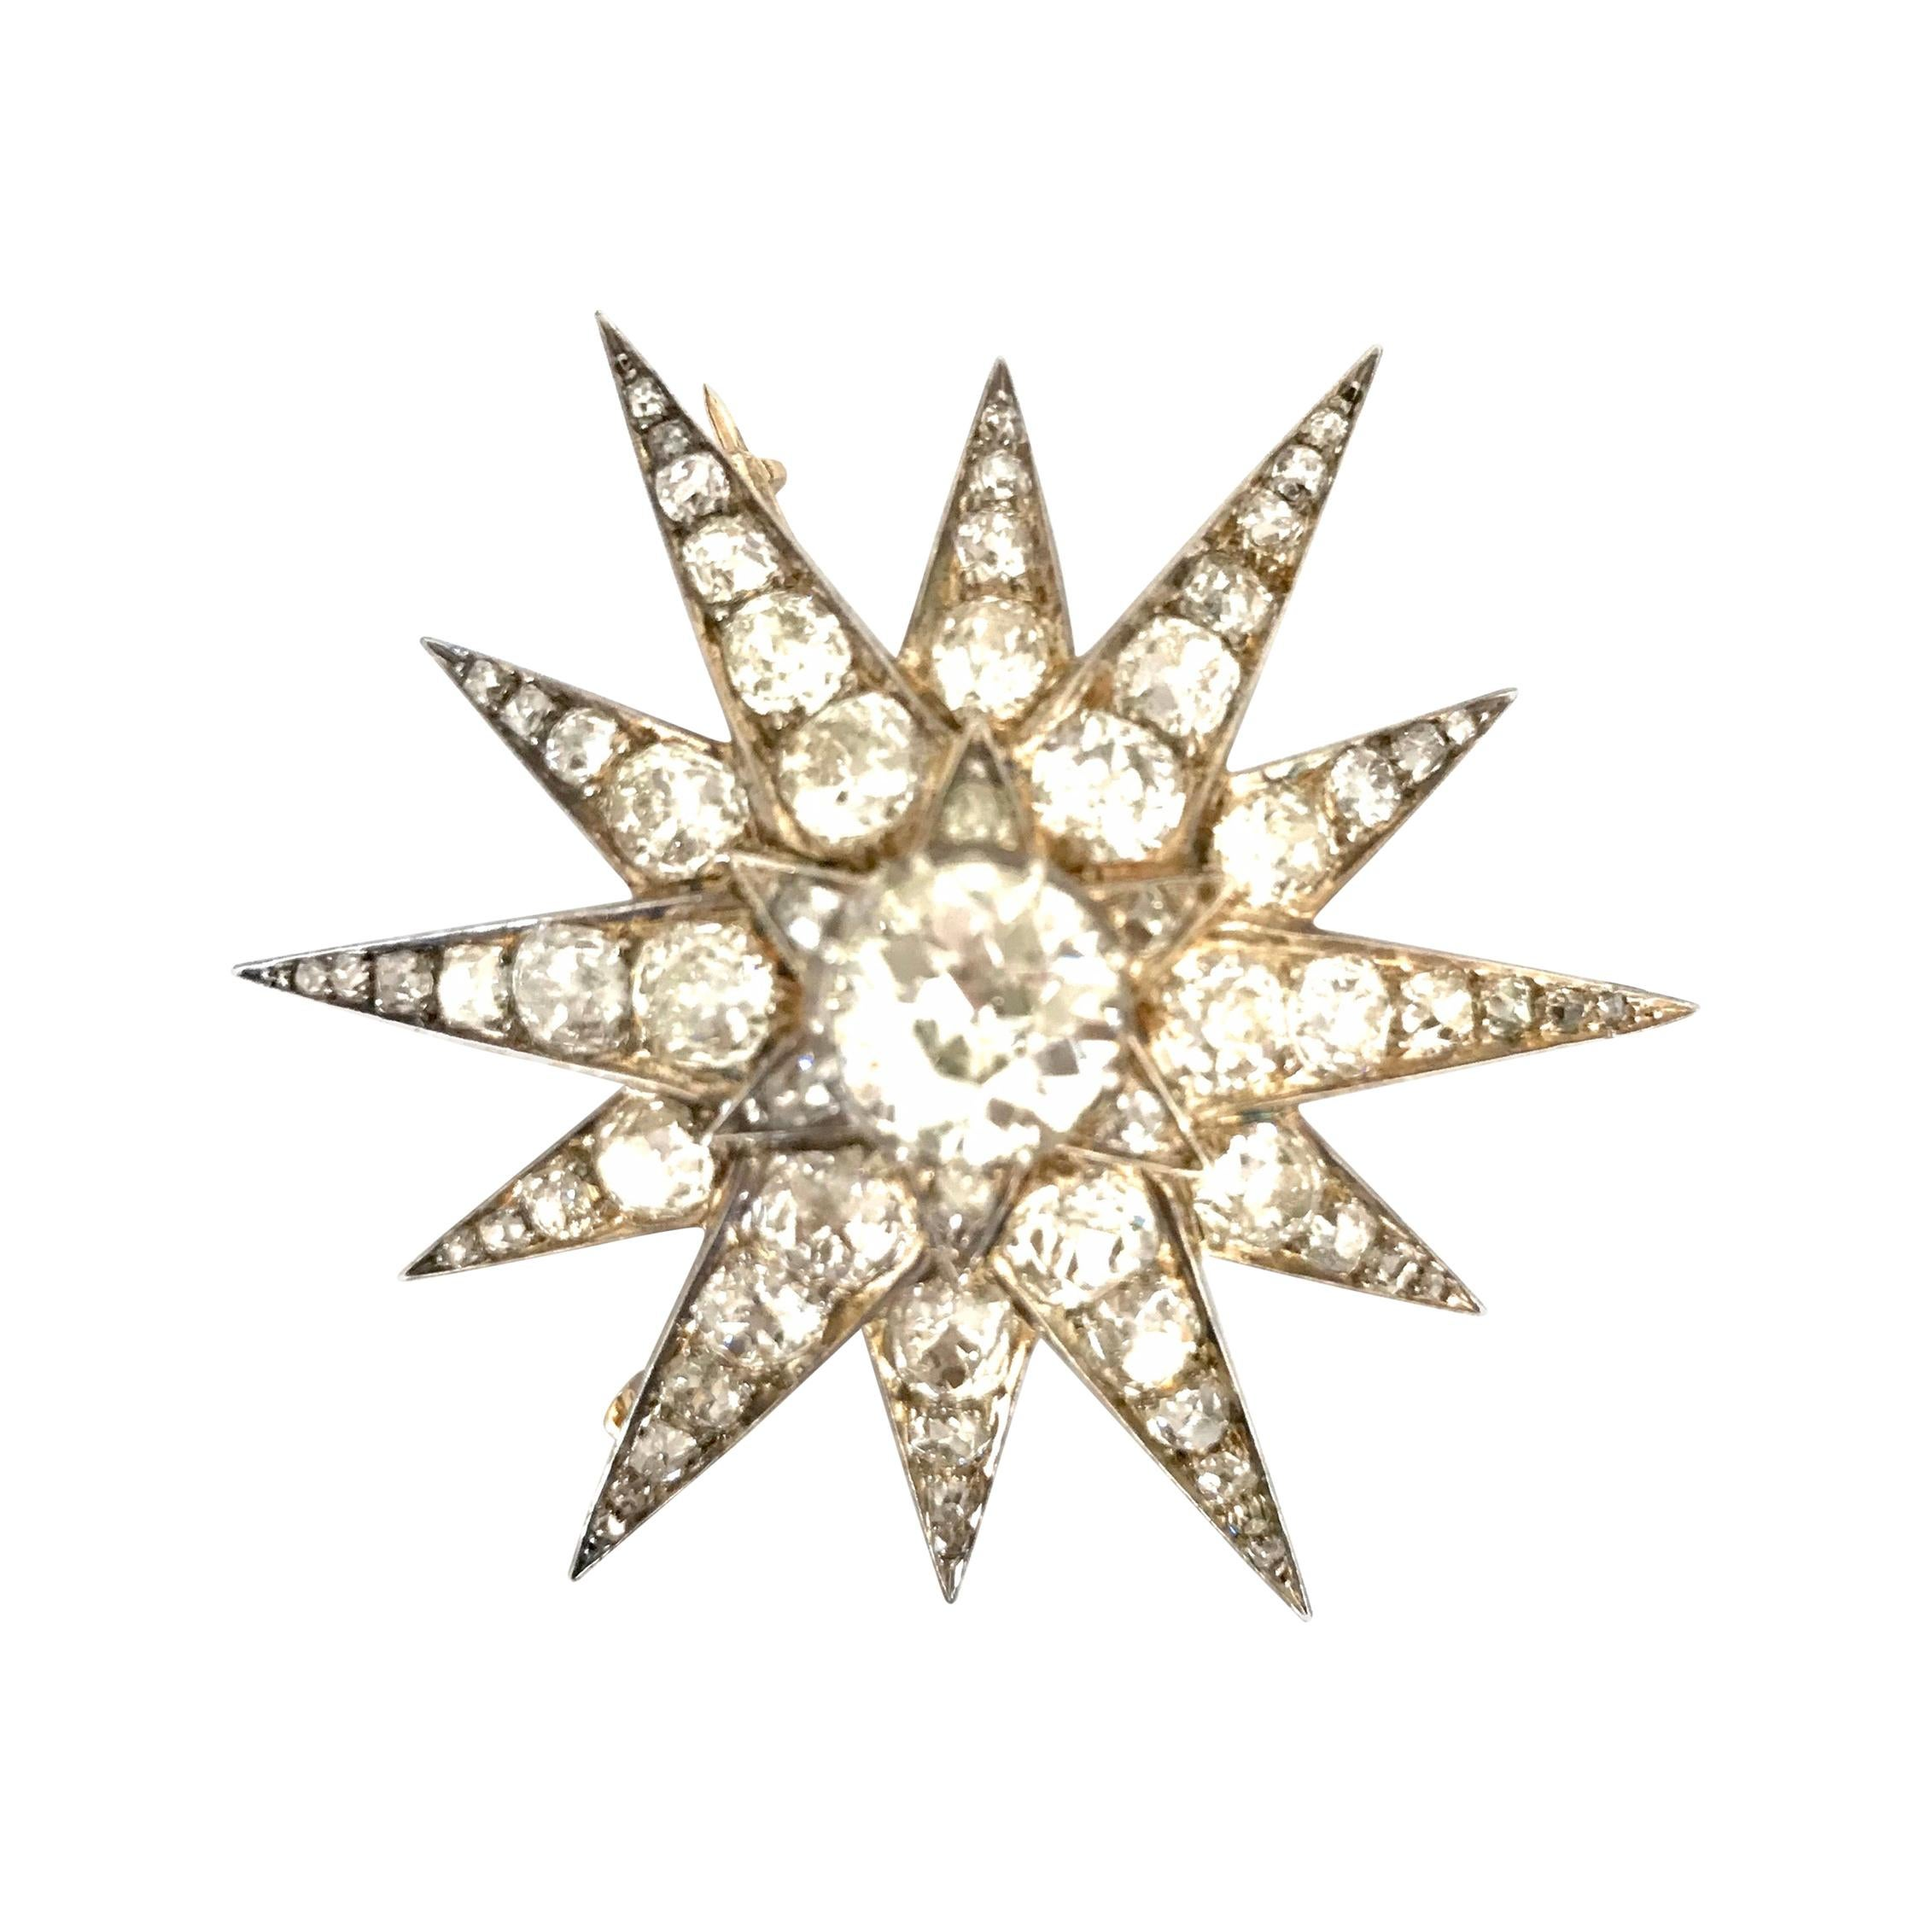 Gemolithos a Victorian Gold, Silver and Diamond Star Brooch/Pendant